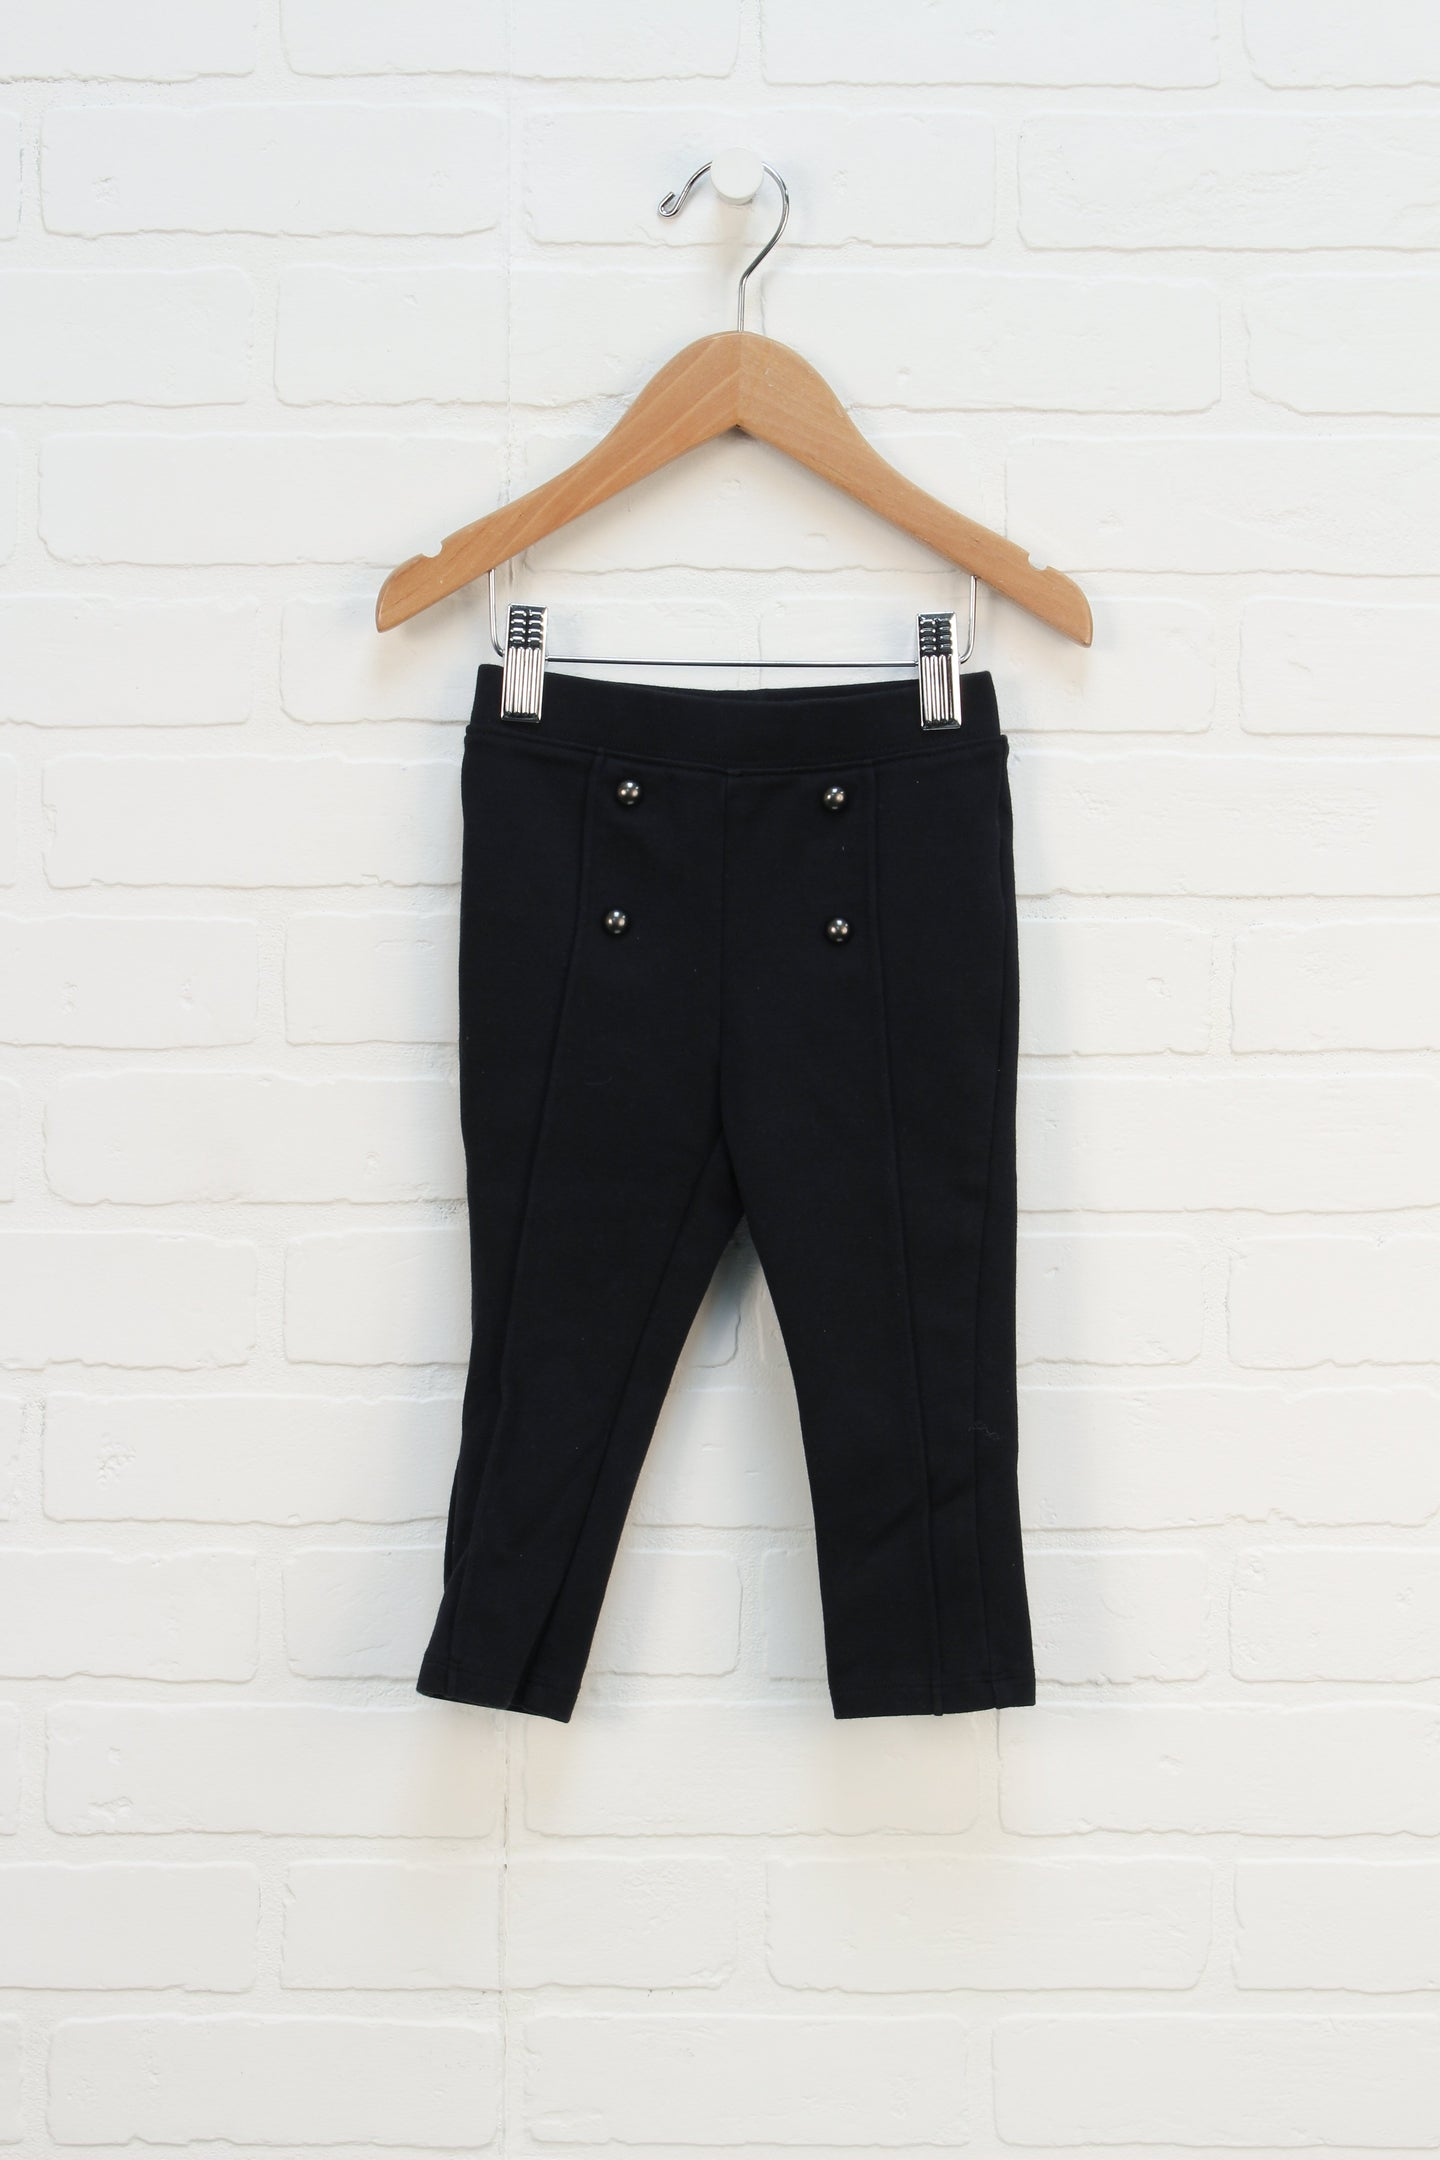 Black Dress Pants (Size 18-24M)